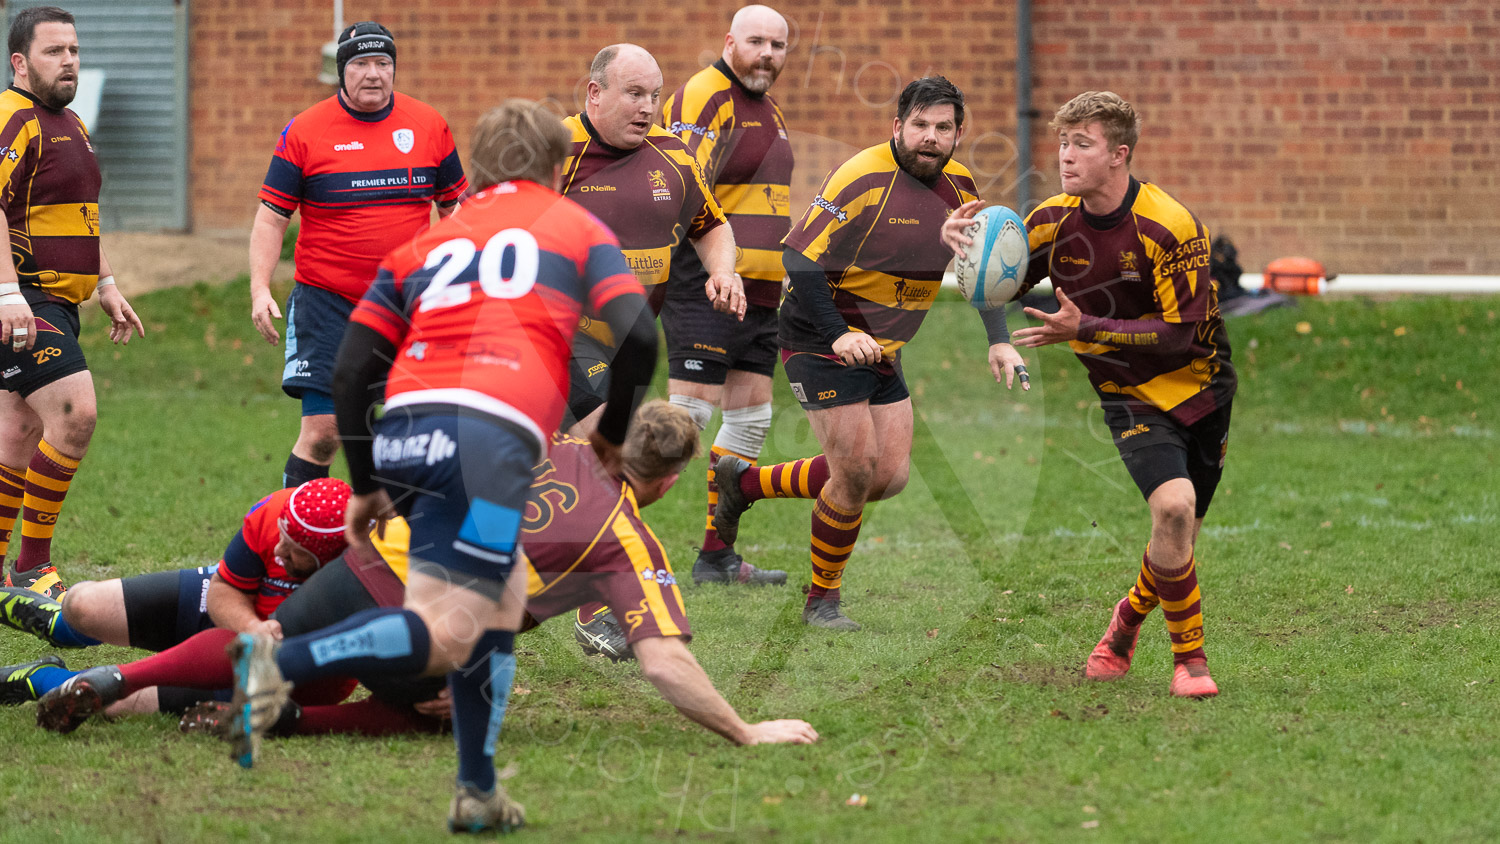 20181027 Amp Extras vs St Neots 2nd XV #2508